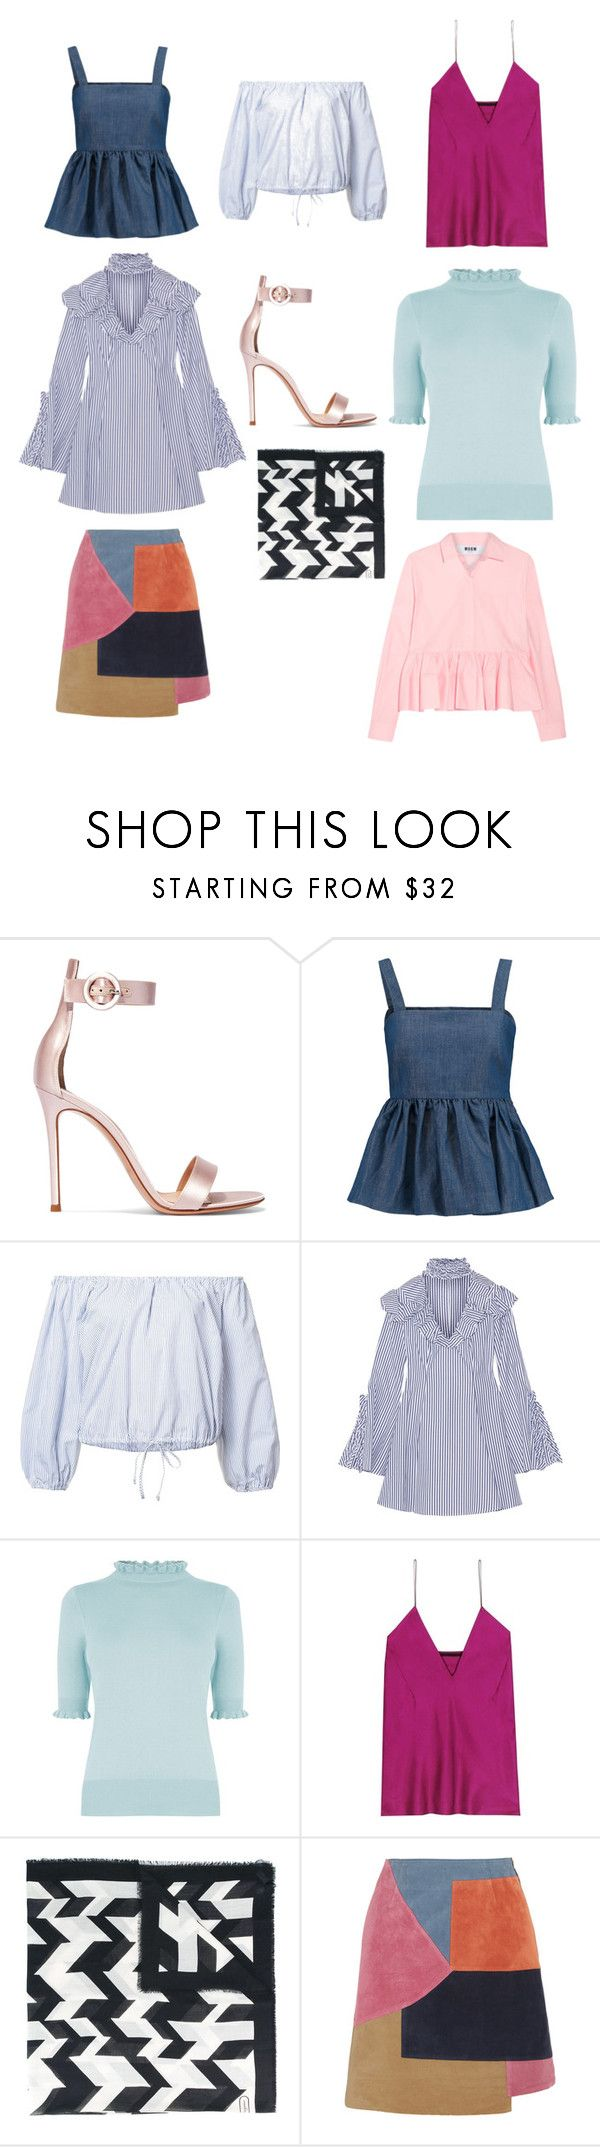 """""""trendings 20? i think?"""" by arcvs ❤ liked on Polyvore featuring Gianvito Rossi, CO, Sea, New York, Caroline Constas, Oasis, Haider Ackermann, Salvatore Ferragamo, M.i.h Jeans and MSGM"""